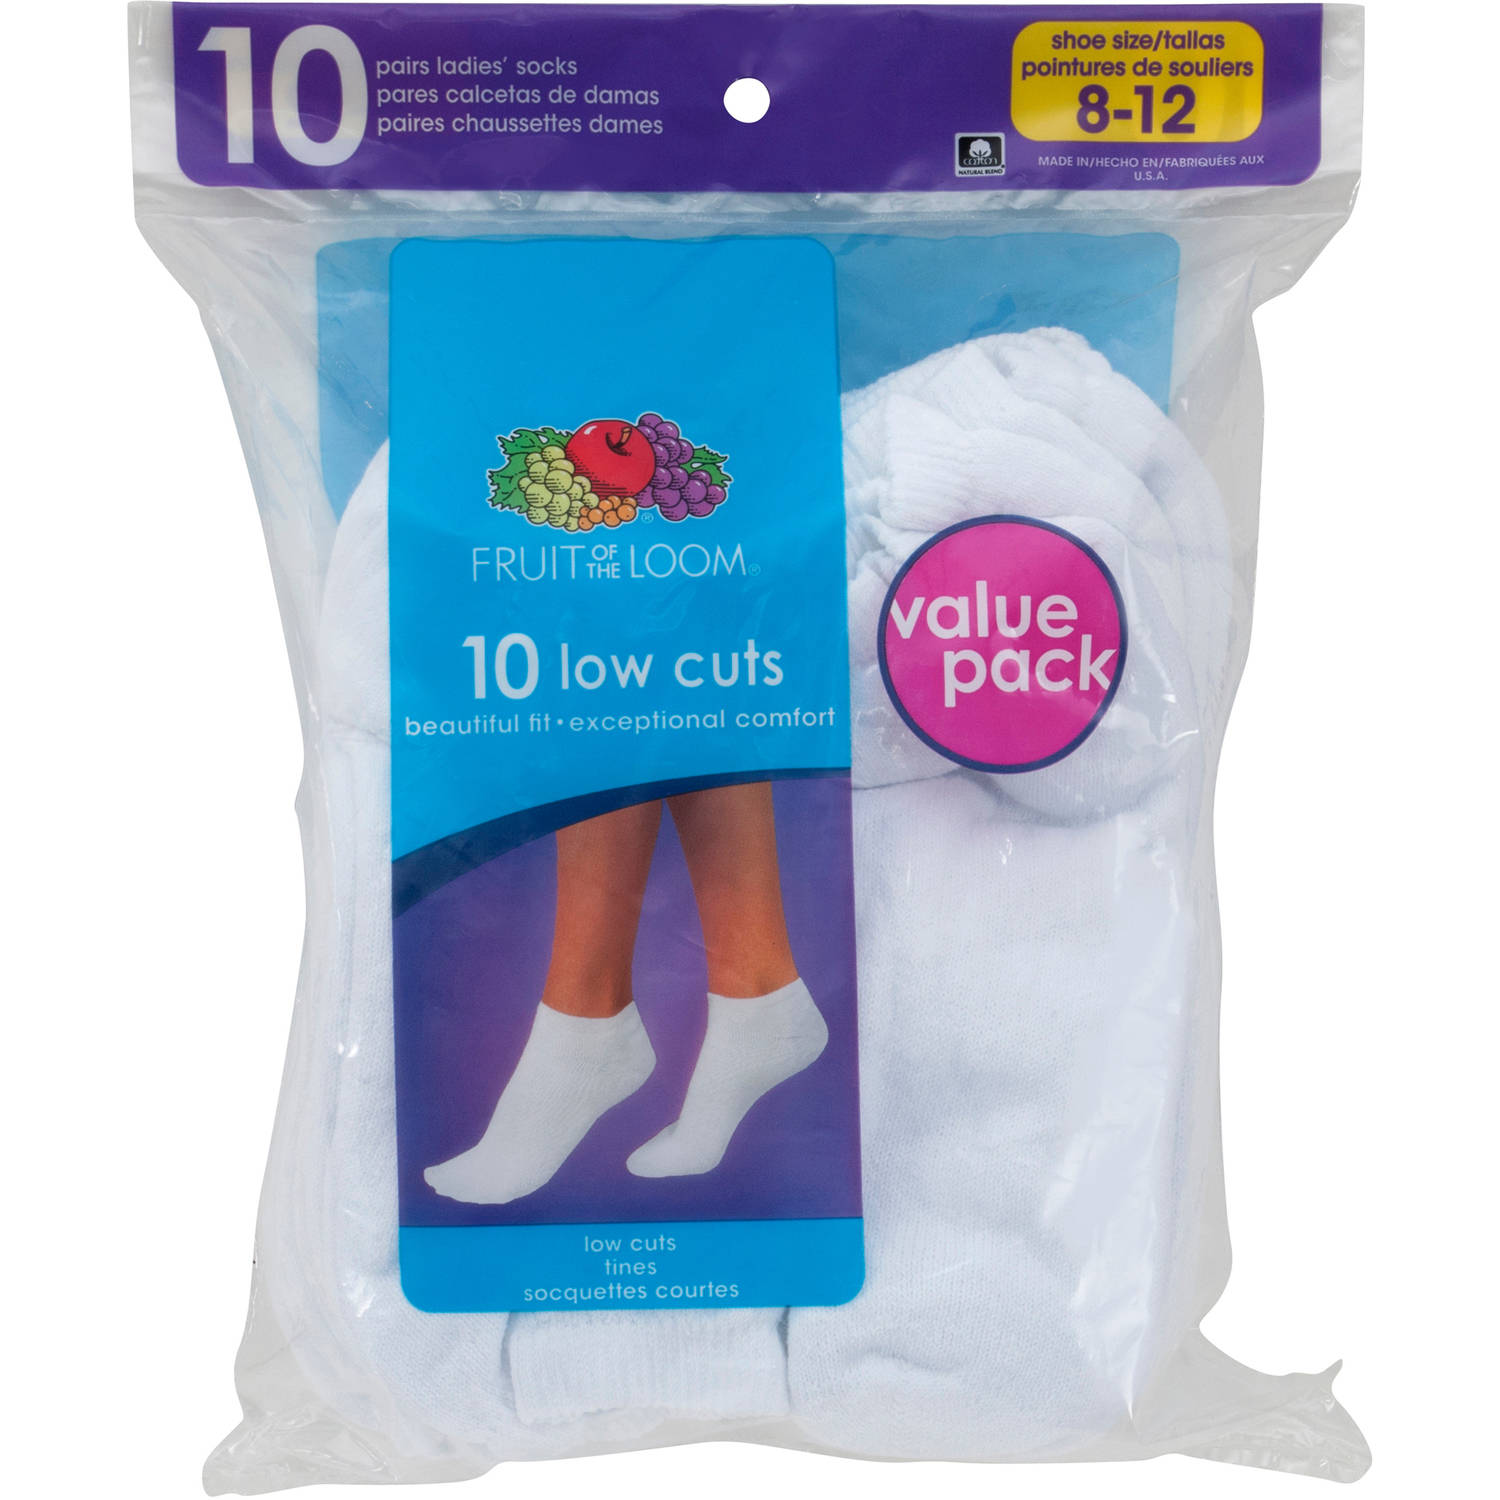 Fruit of the Loom Womens Value Pack Low Cut Socks, 10 Pairs